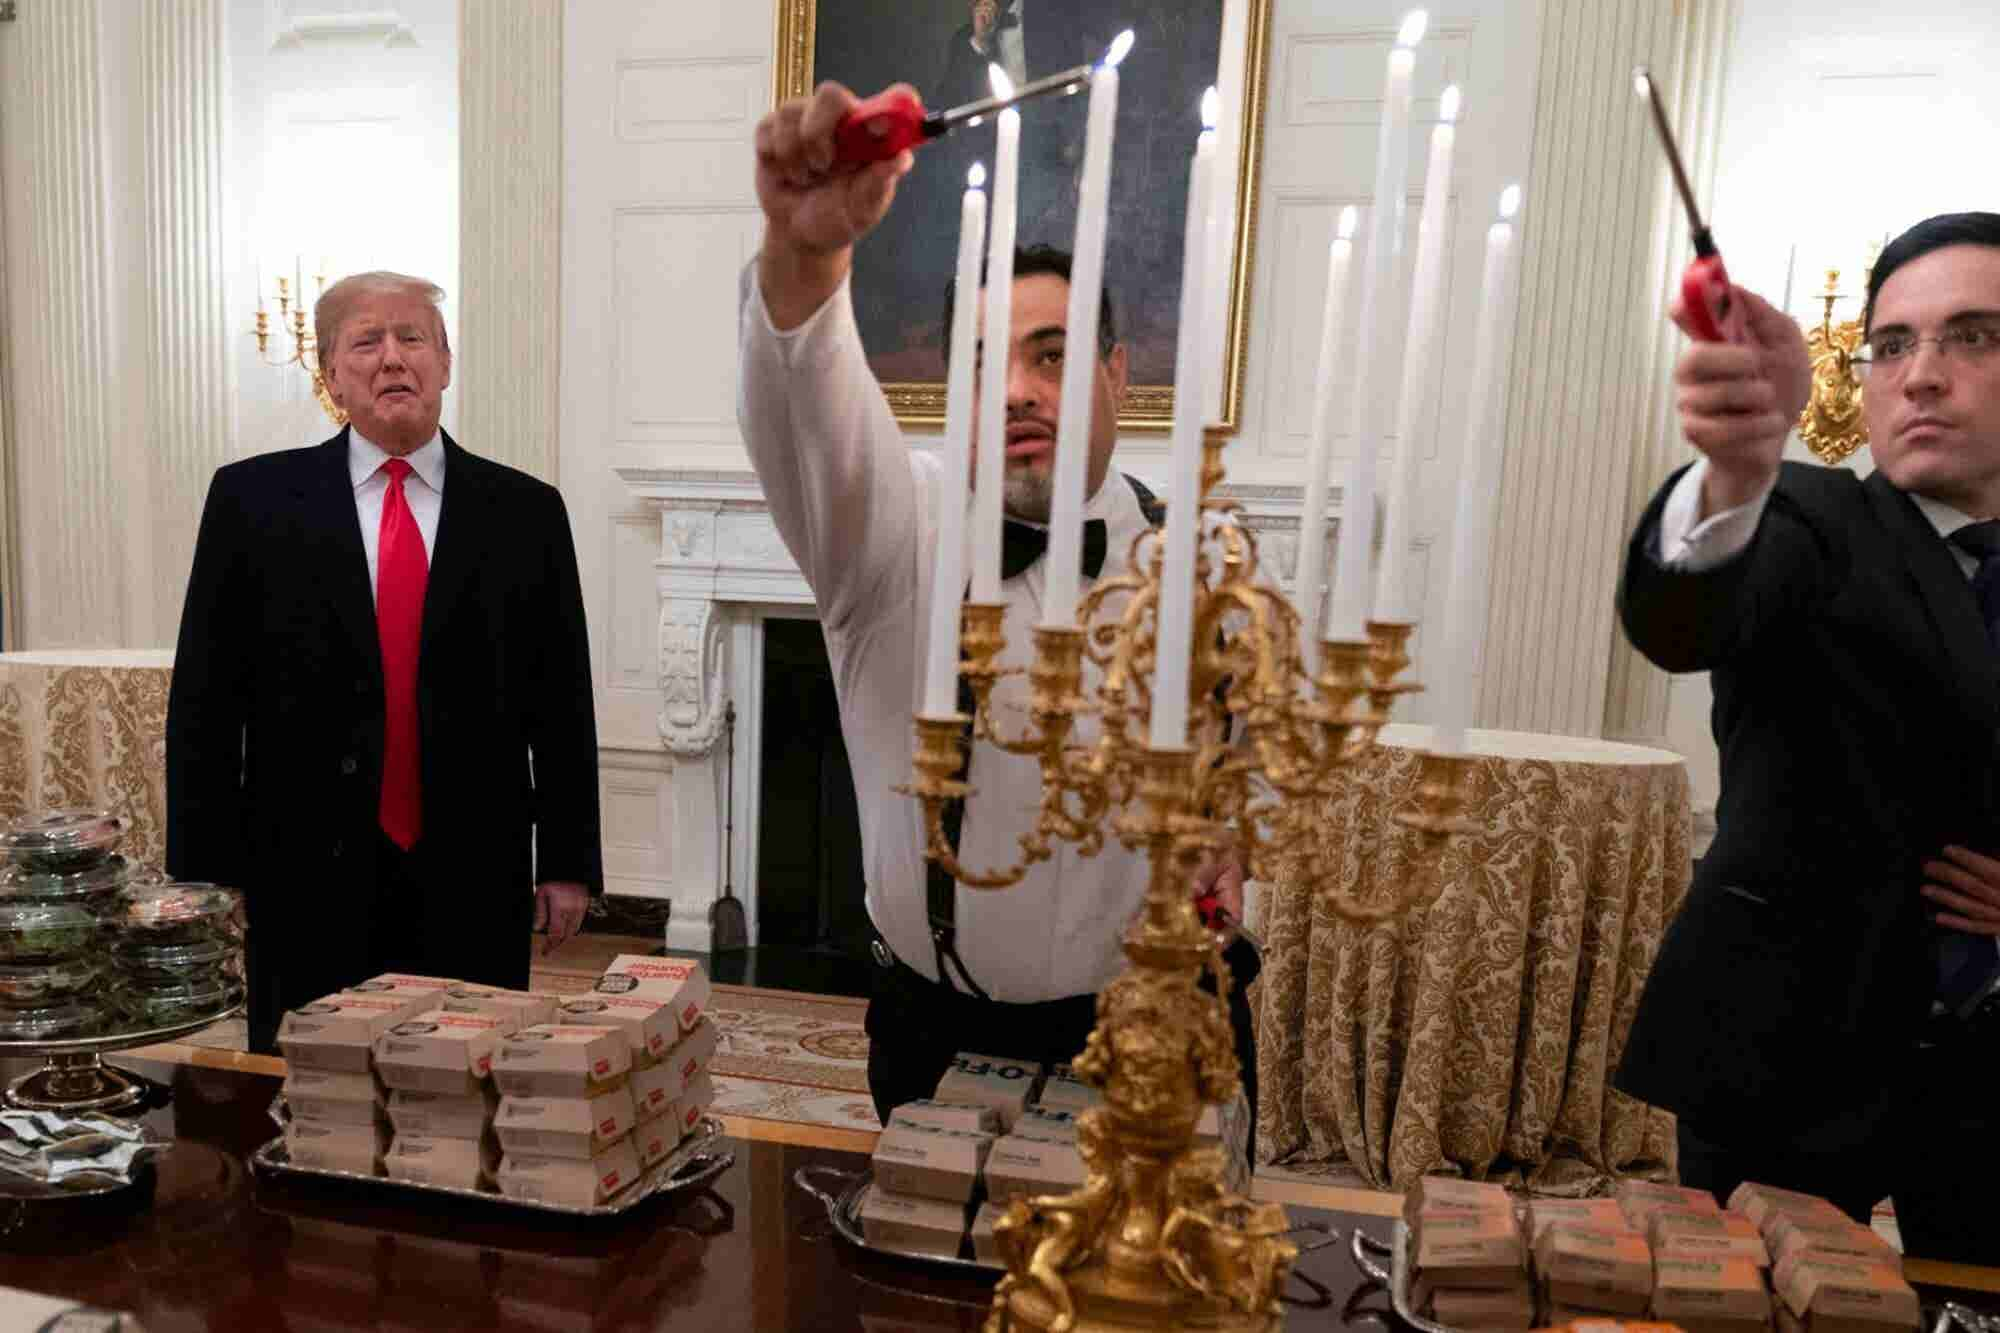 Trump Greets Clemson Tigers With Fast-Food Buffet of Wendy's, McDonald's and Burger King as They Celebrate Their National Championship